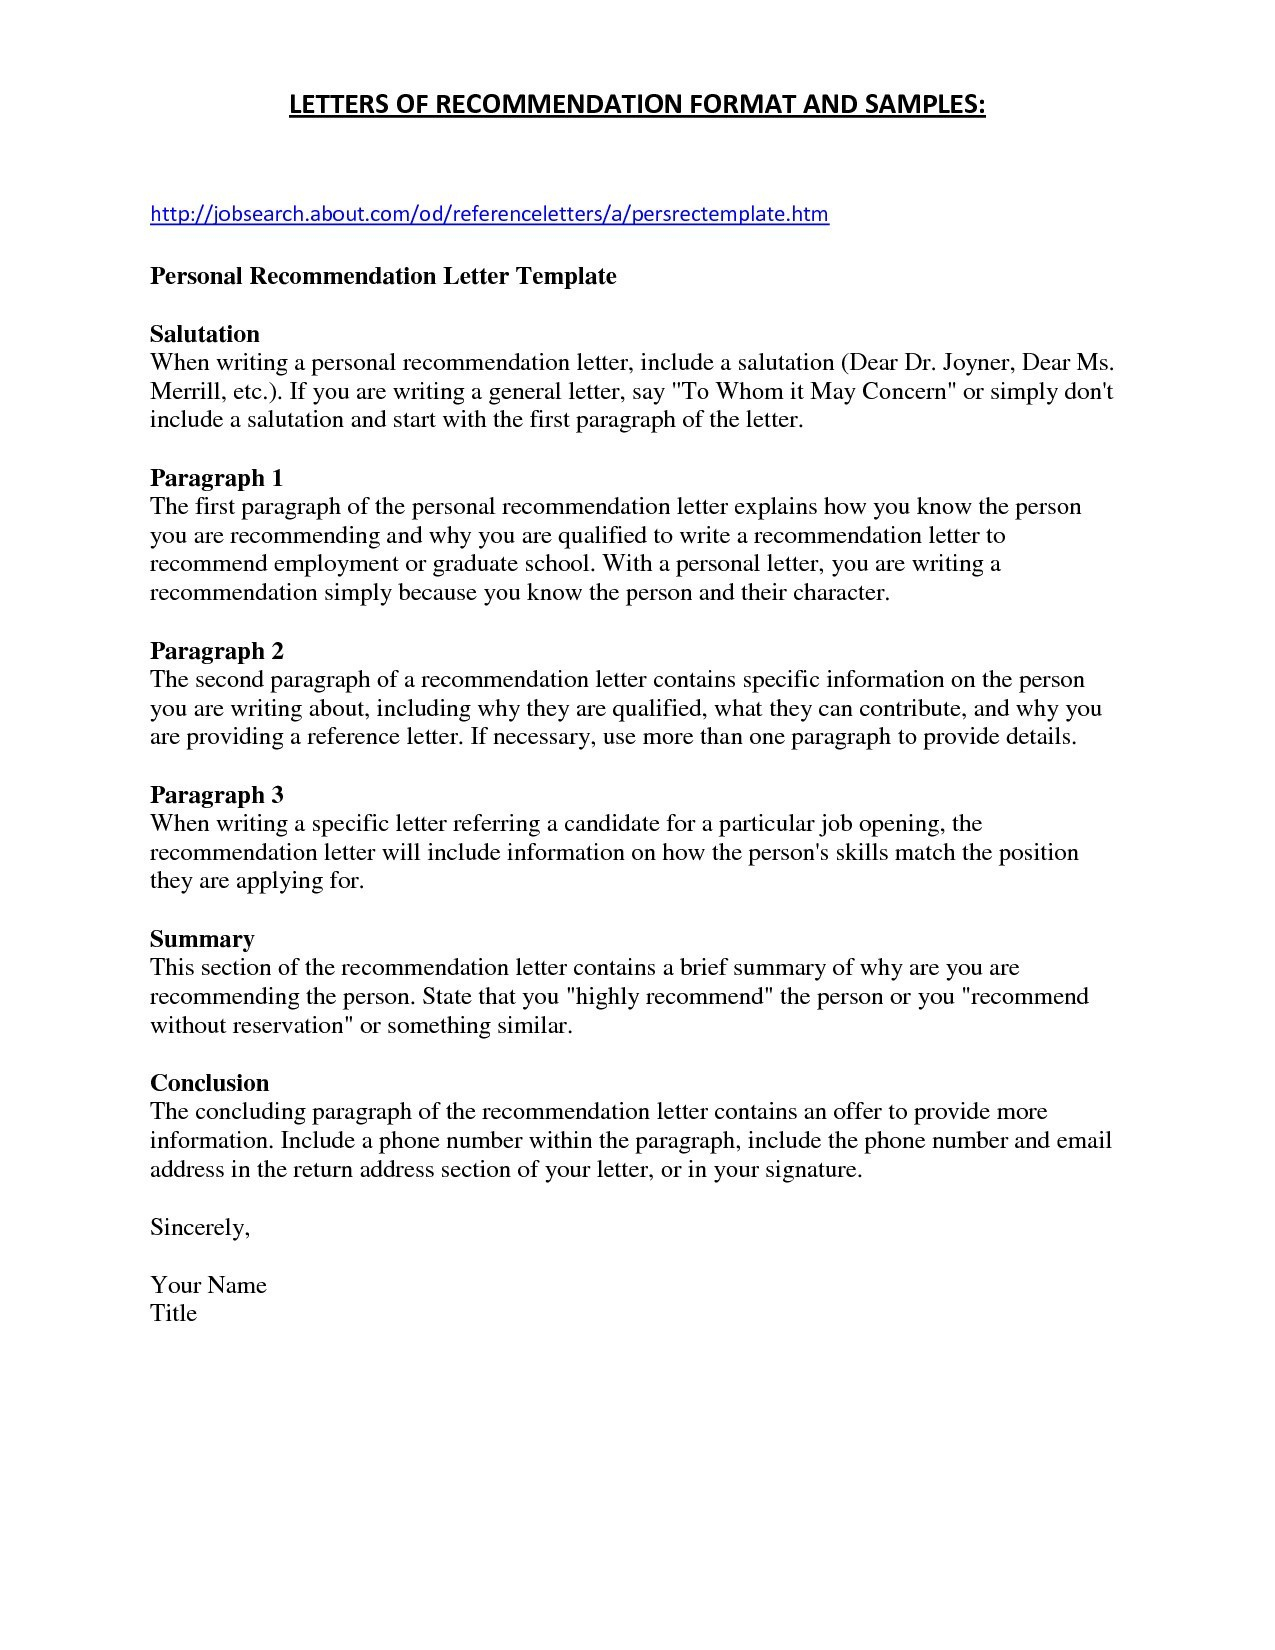 Resume Template for Police Officer - Police Ficer Resume Examples